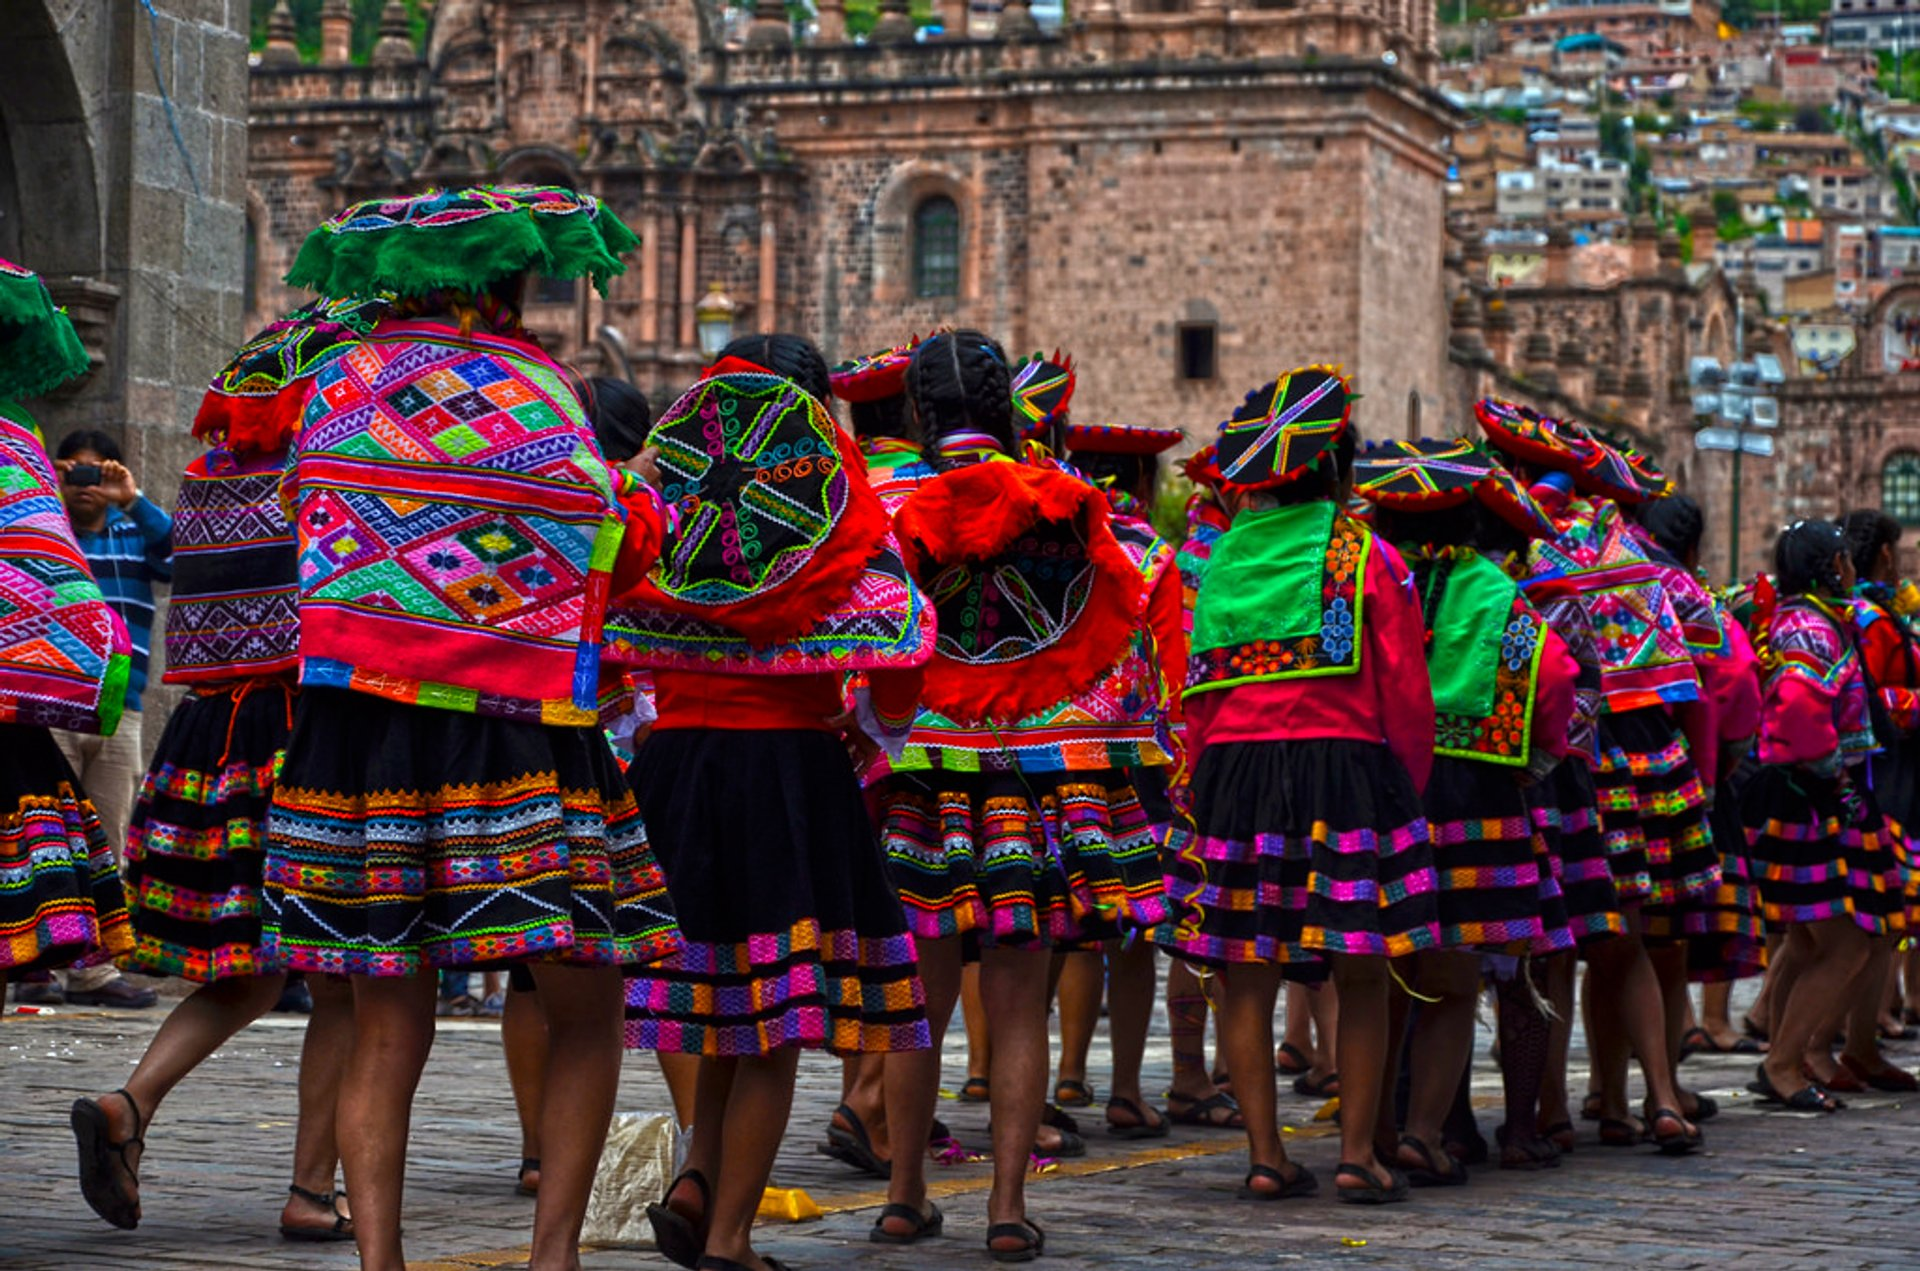 Cusco Carnival in Machu Picchu and Cusco - Best Season 2020